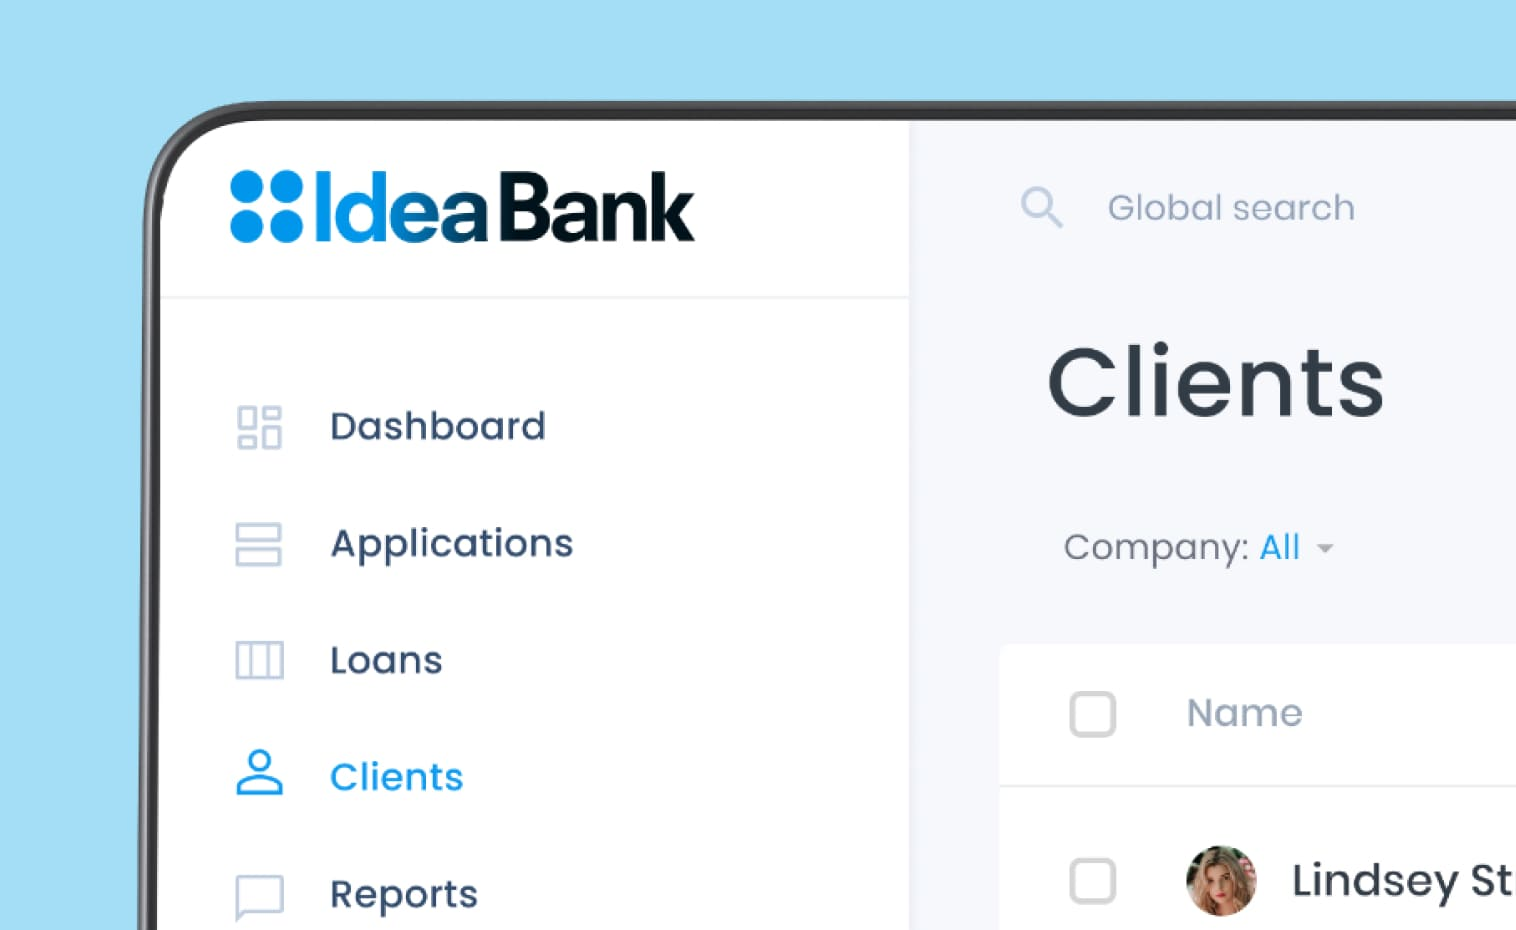 IdeaBank Study Case